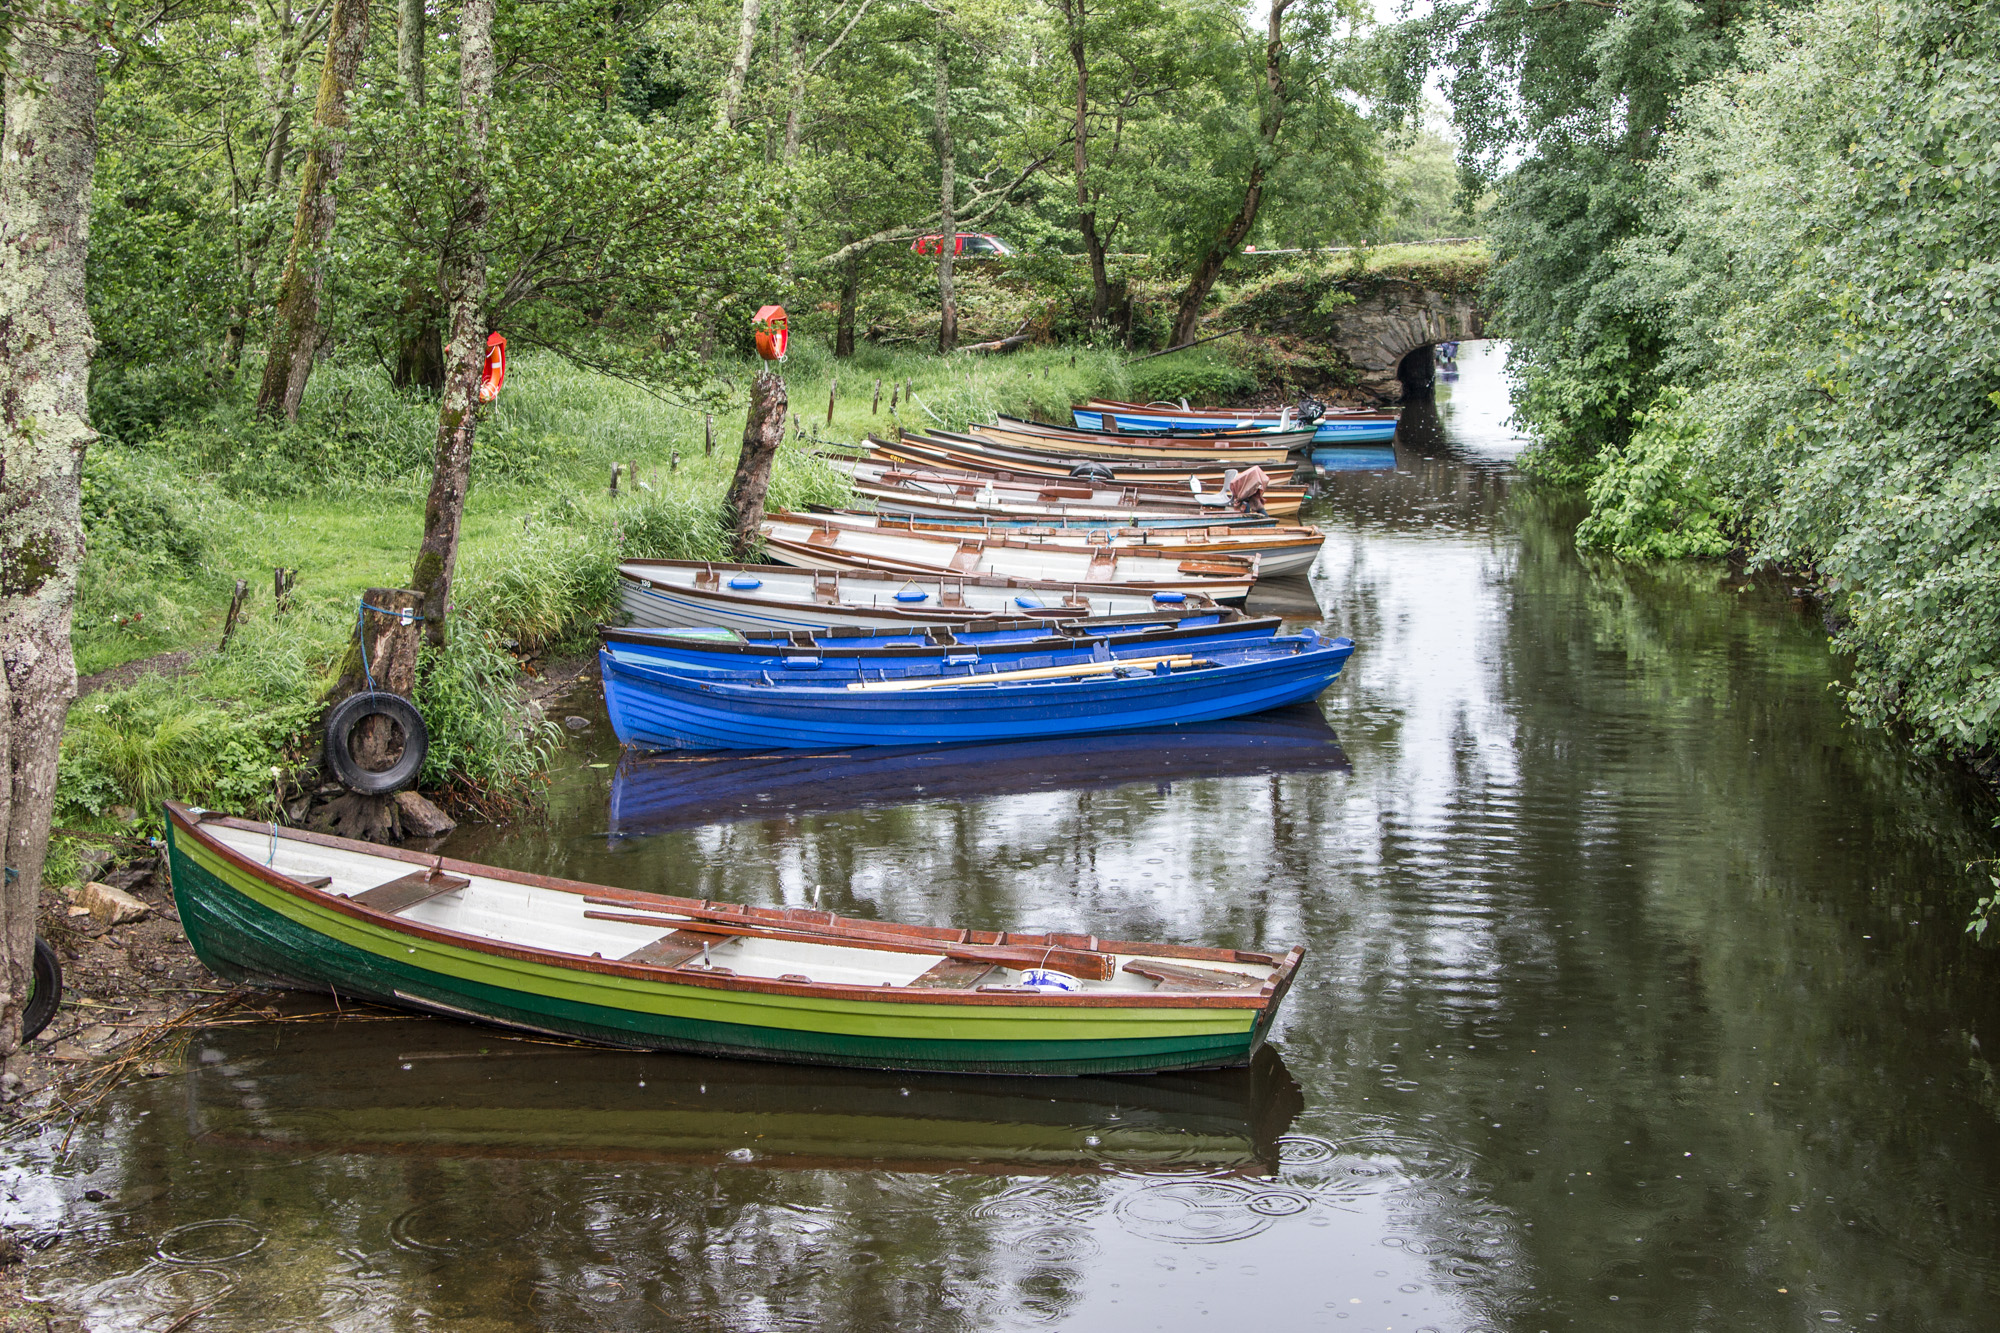 Colorful rowboats on a river in Killarney National Park